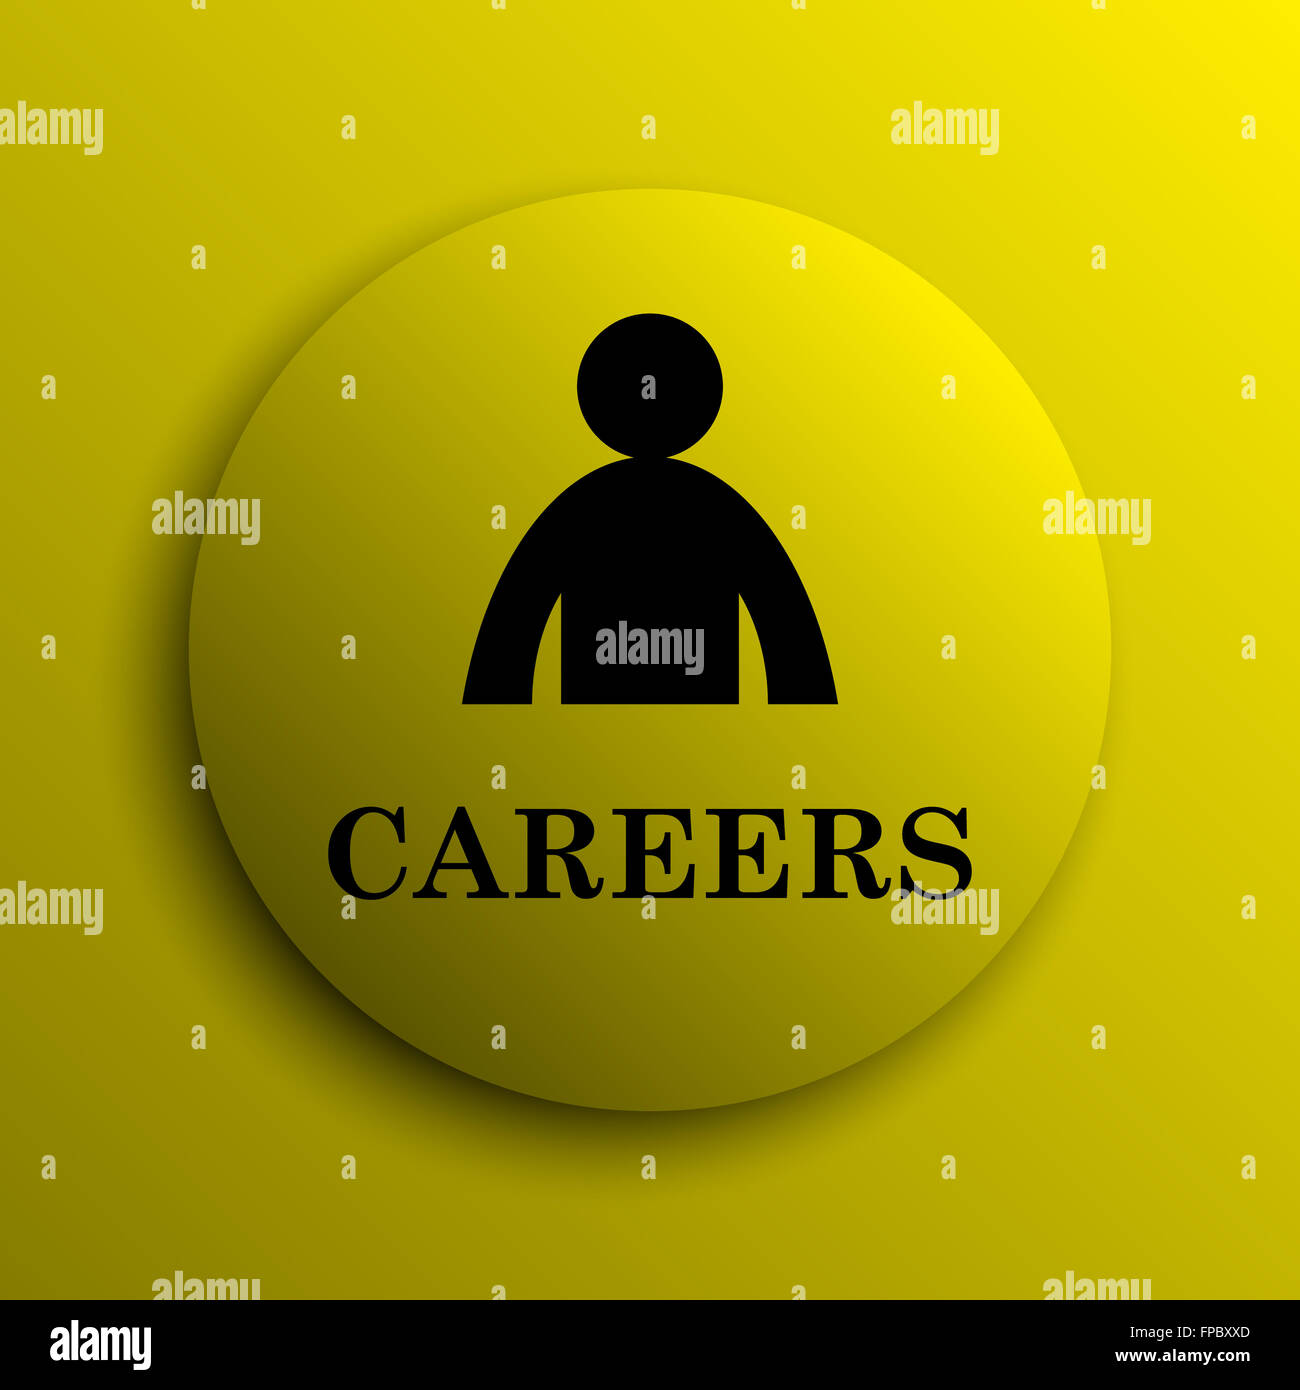 Careers icon. Yellow internet button. - Stock Image